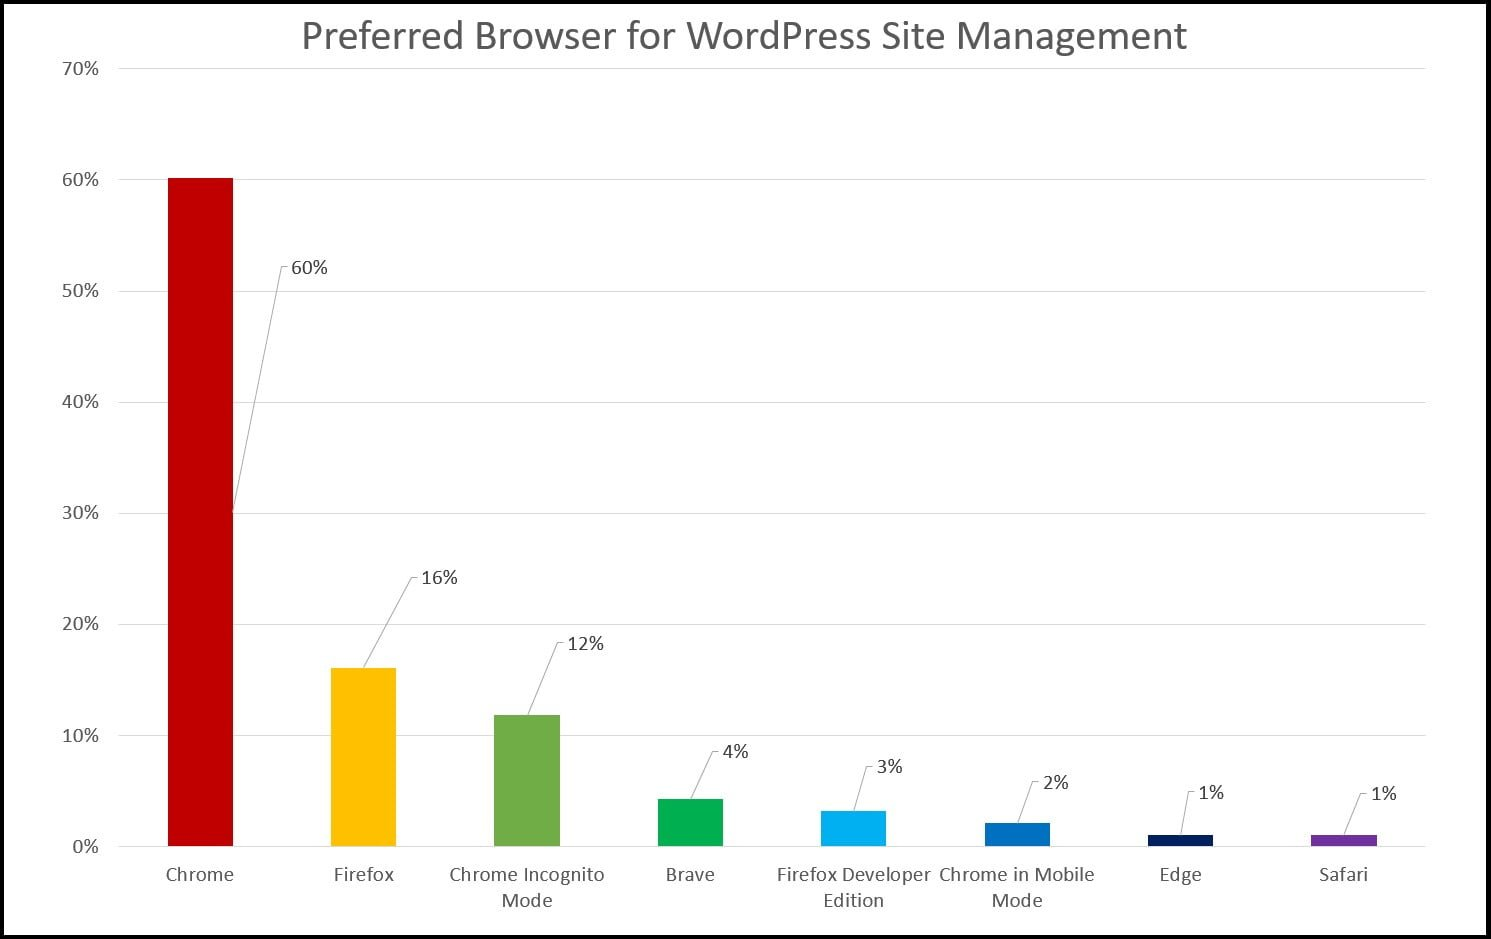 Browser Usage by Type for WordPress Website Management